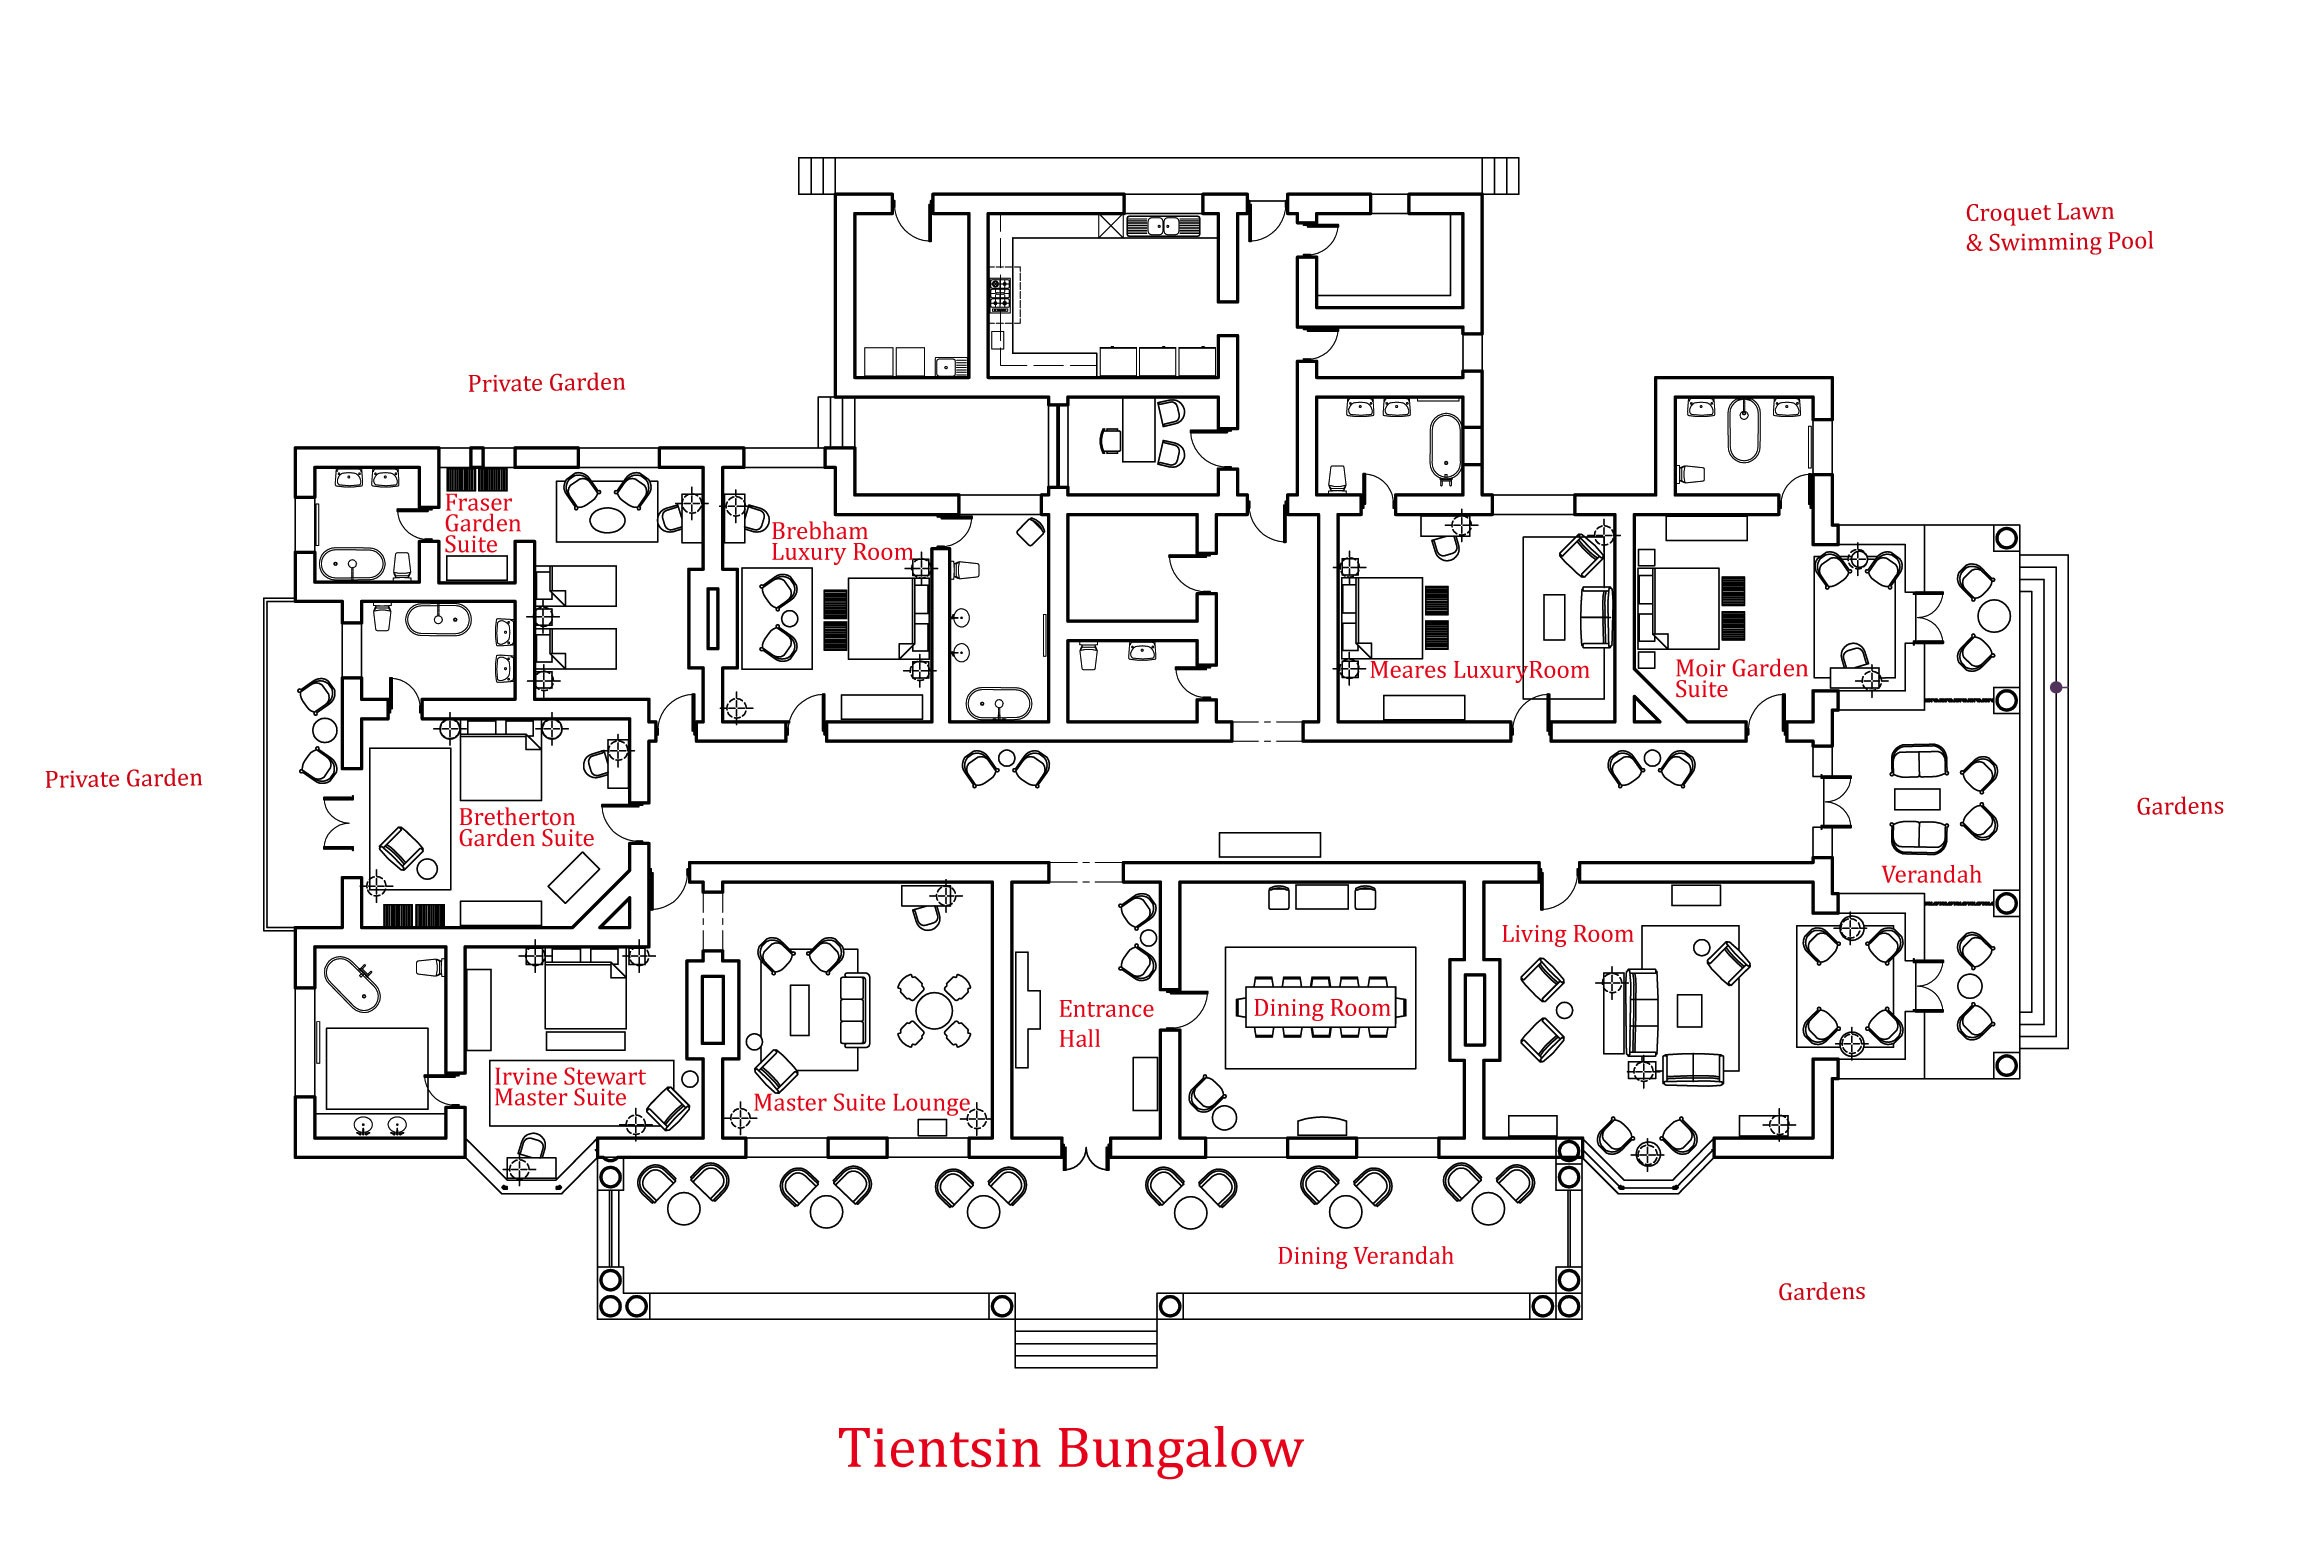 Bungalow Floor Plan 2 Bedroom Bungalow Plans Luxury